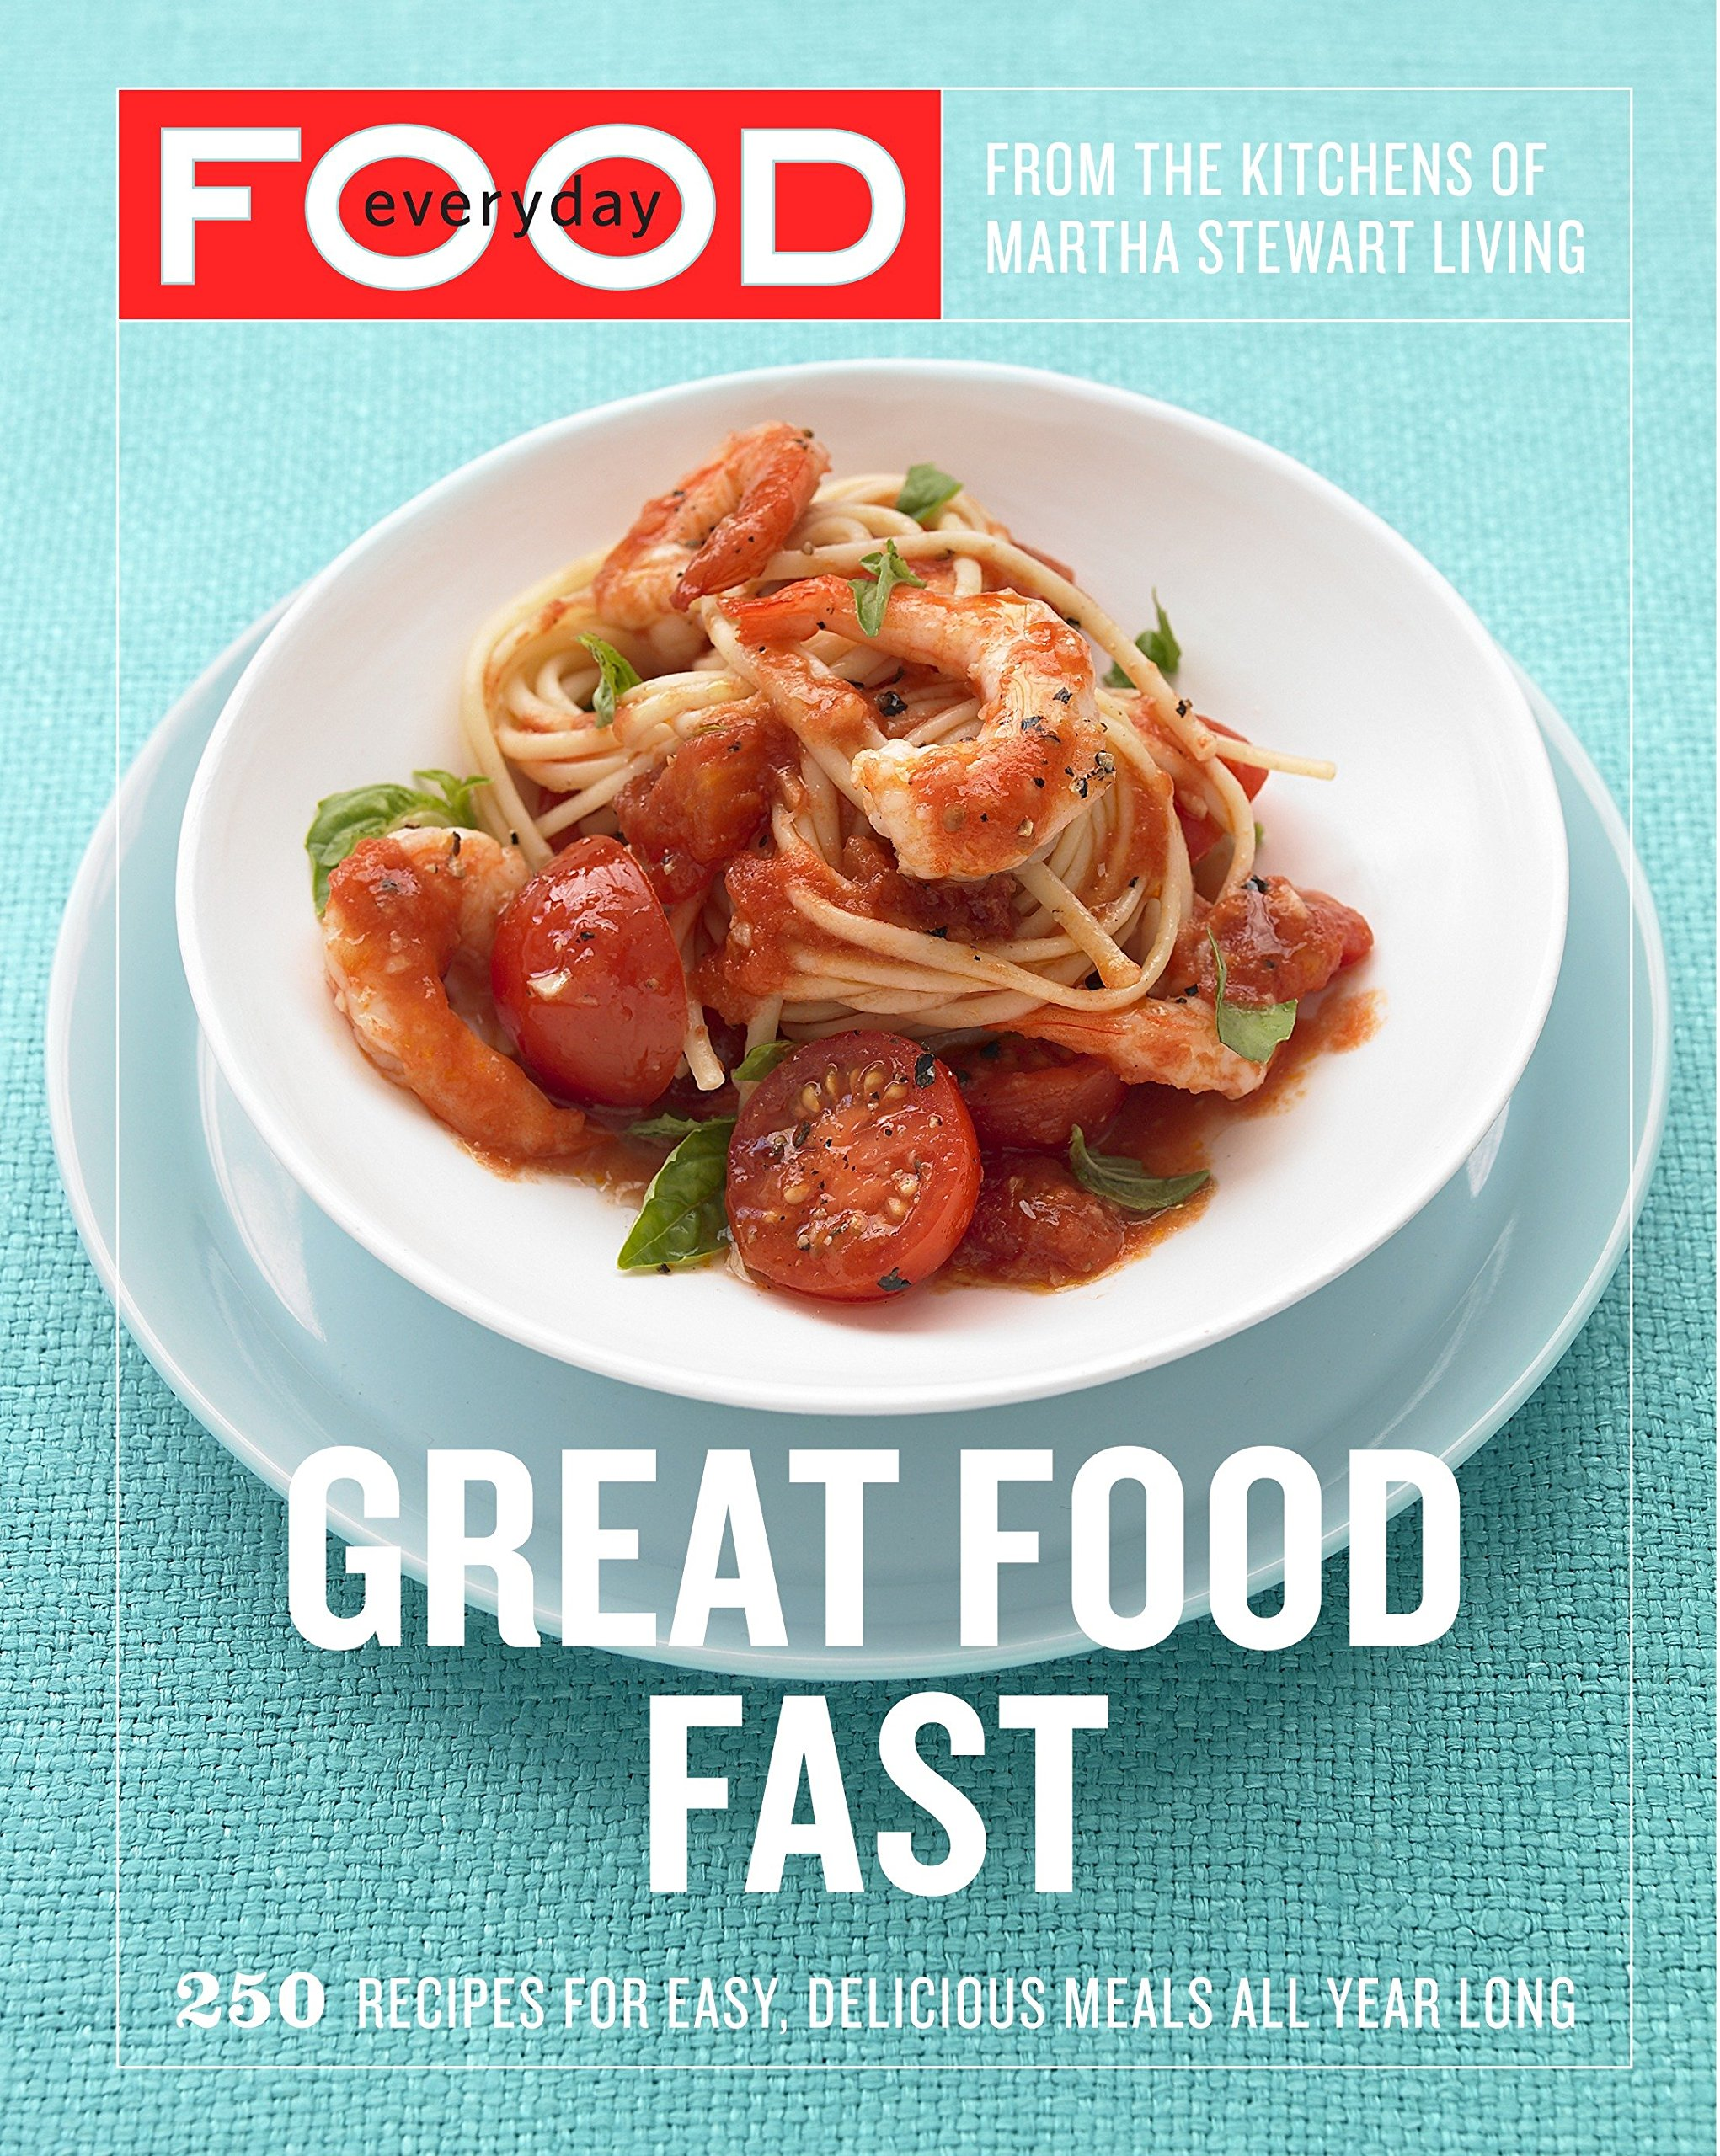 everyday food great food fast 250 recipes for easy delicious